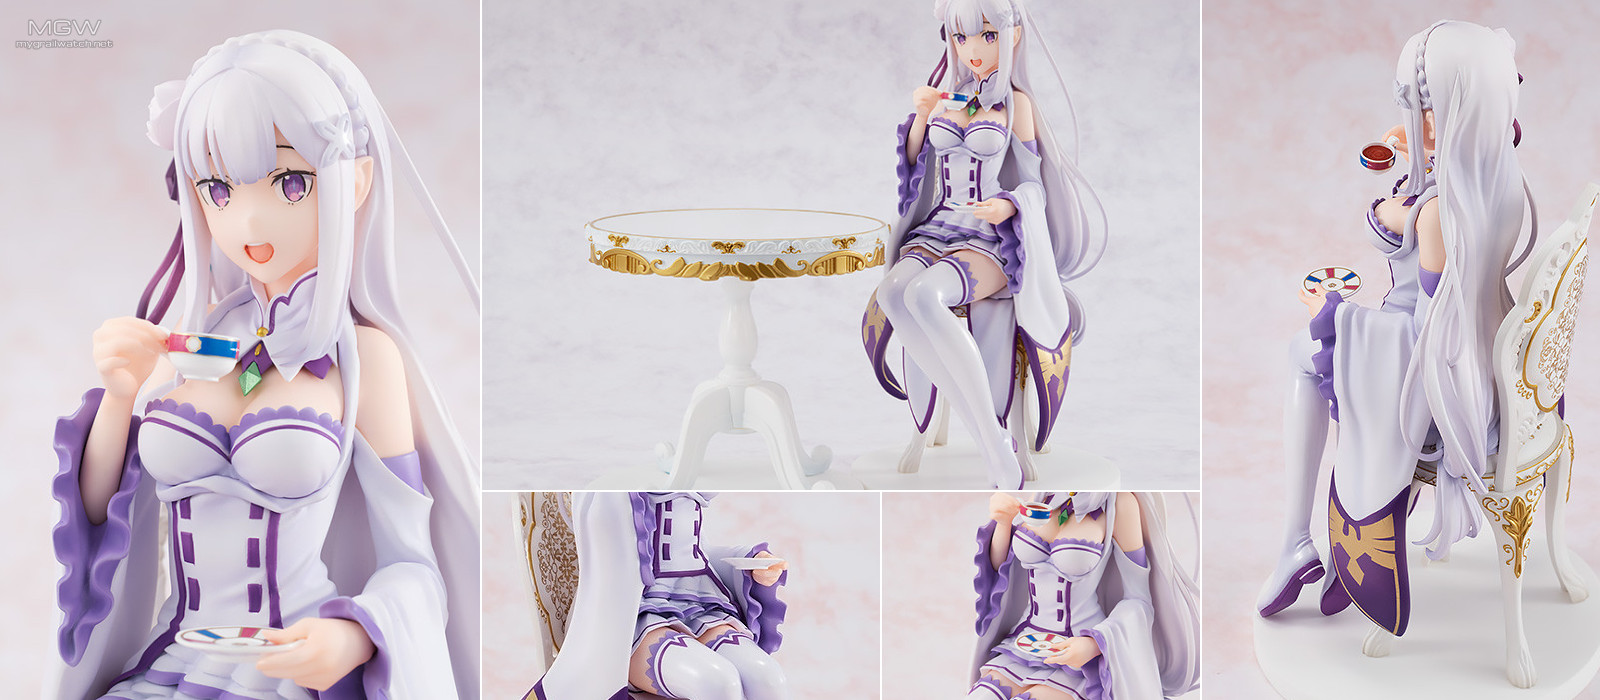 Emilia Tea Party ver. by KADOKAWA from Re:ZERO - Starting Life in Another World -